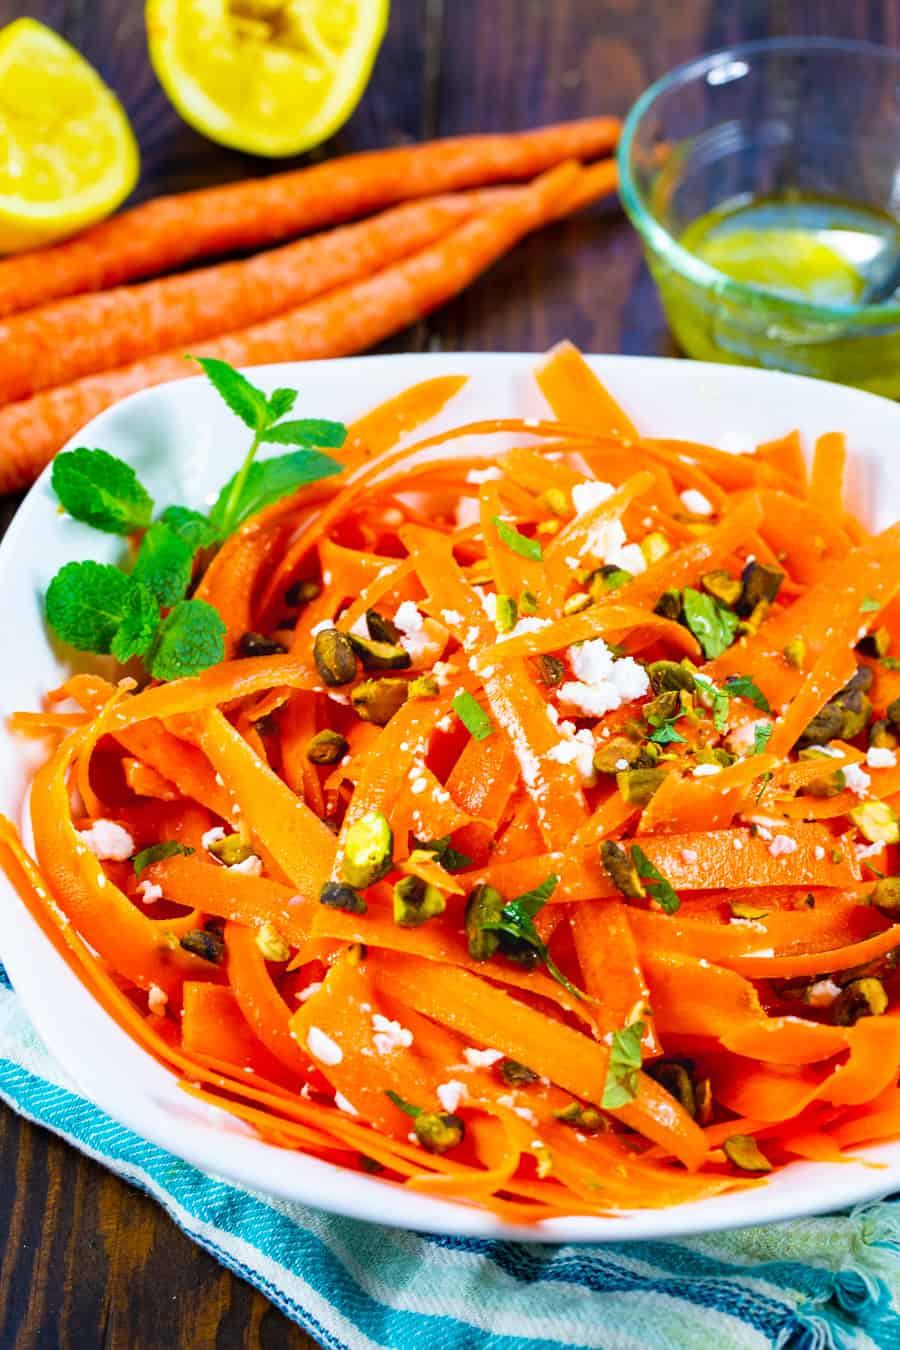 Carrot salad in a bowl with whole carrots and lemons in background.